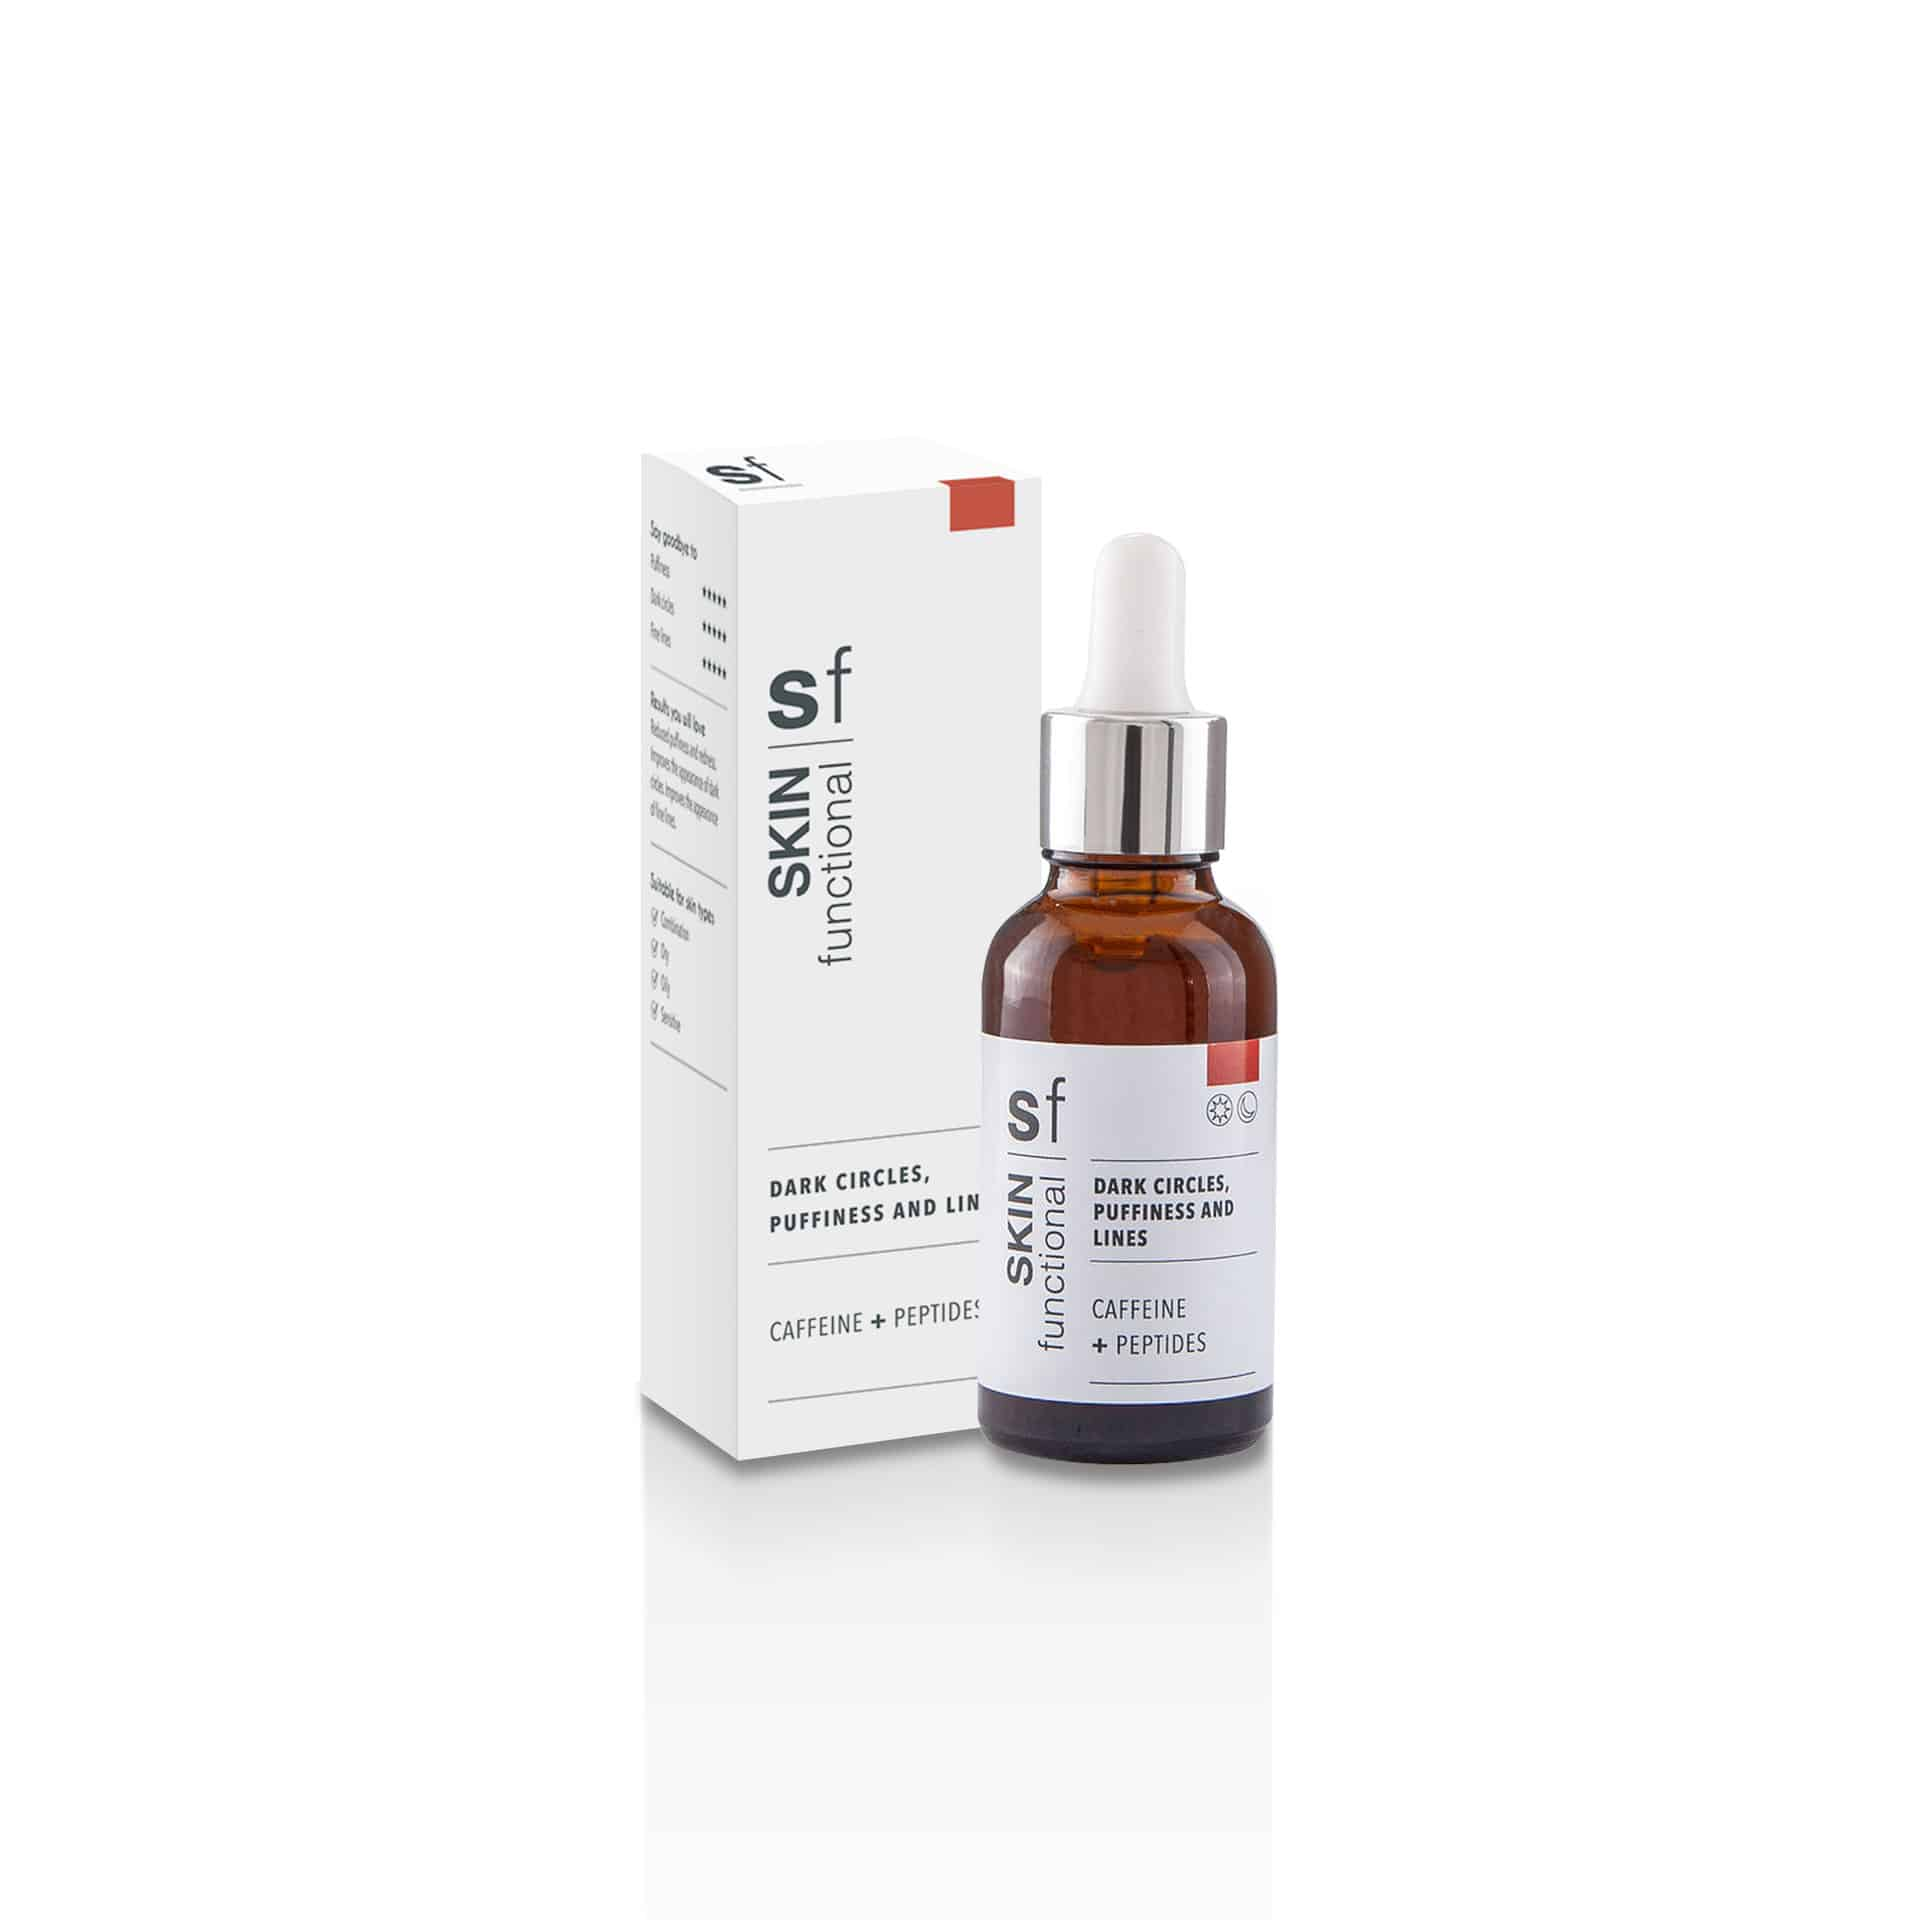 Dark Circles, Puffiness And Lines - Caffeine + Peptides